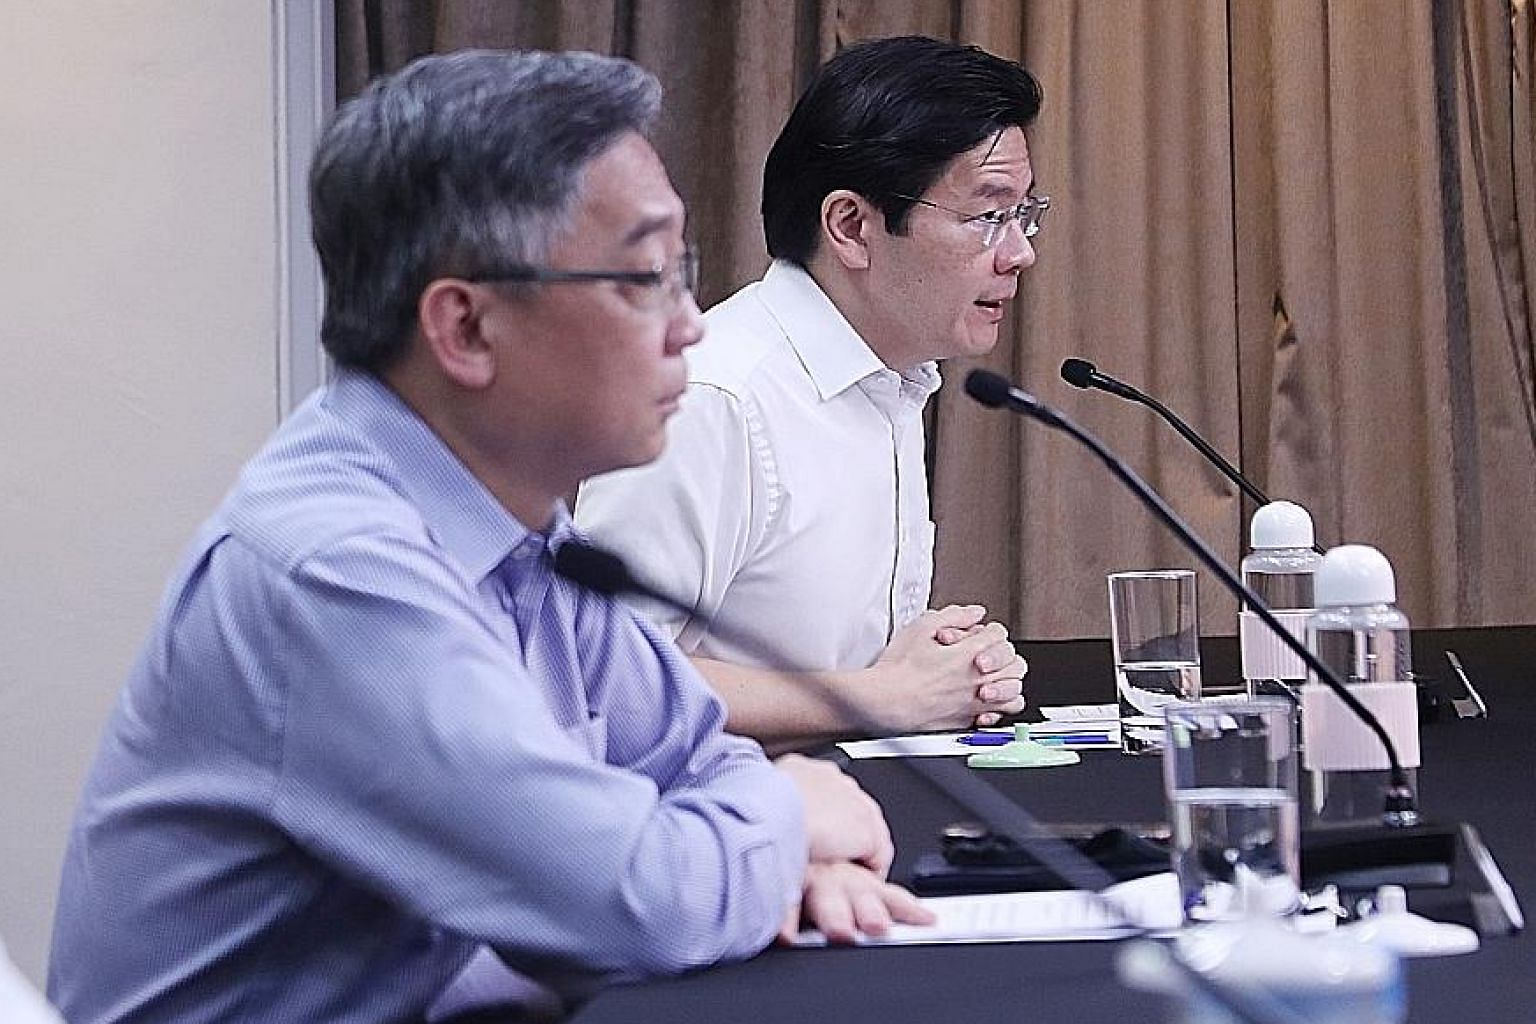 Health Minister Gan Kim Yong (left), who co-chairs the multi-ministry task force tackling Covid-19 with National Development Minister Lawrence Wong, said there would be continuity in the task force's leadership. PHOTO: MCI